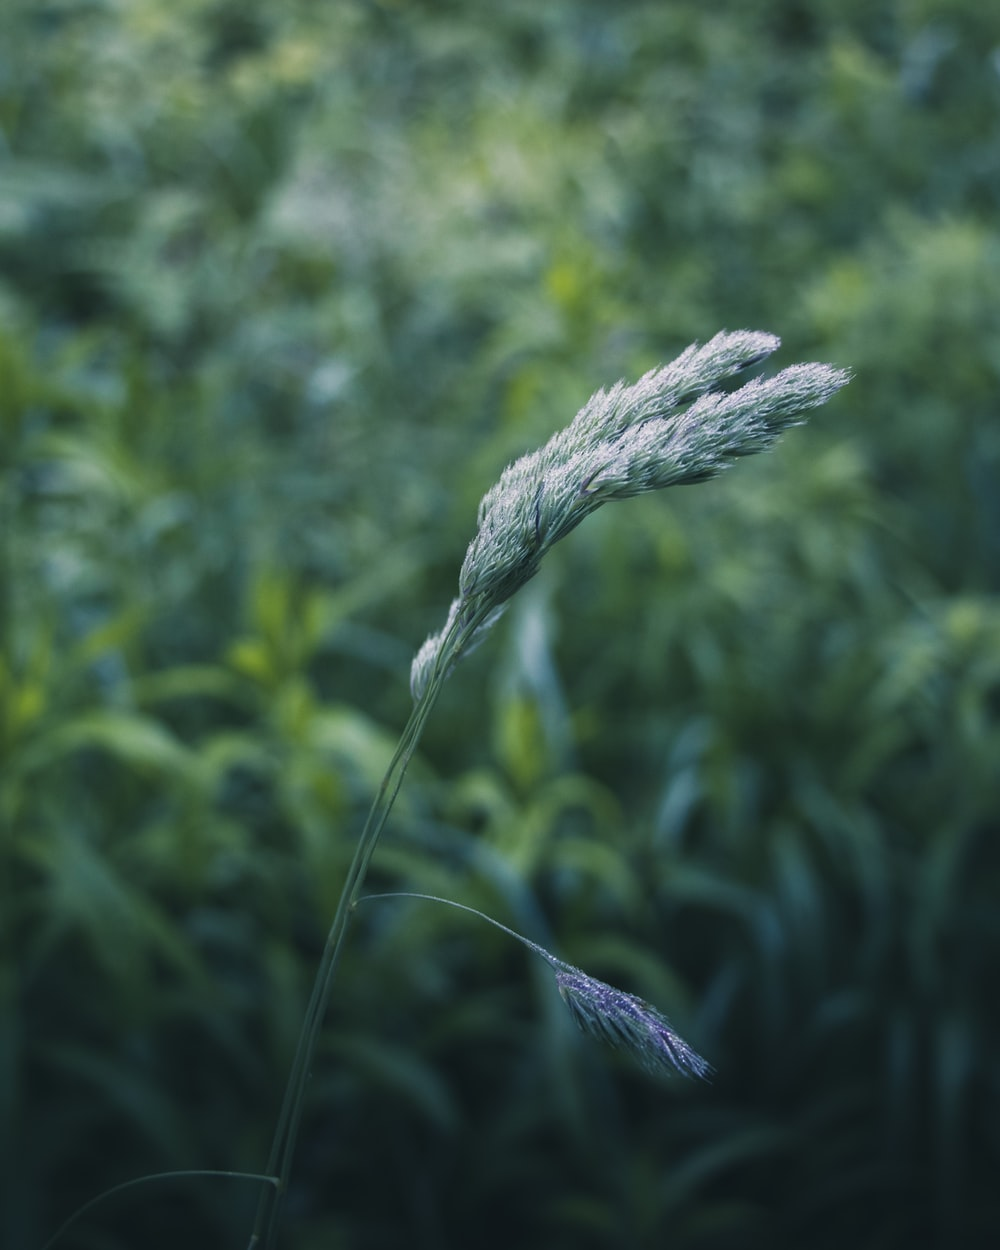 green wheat in close up photography